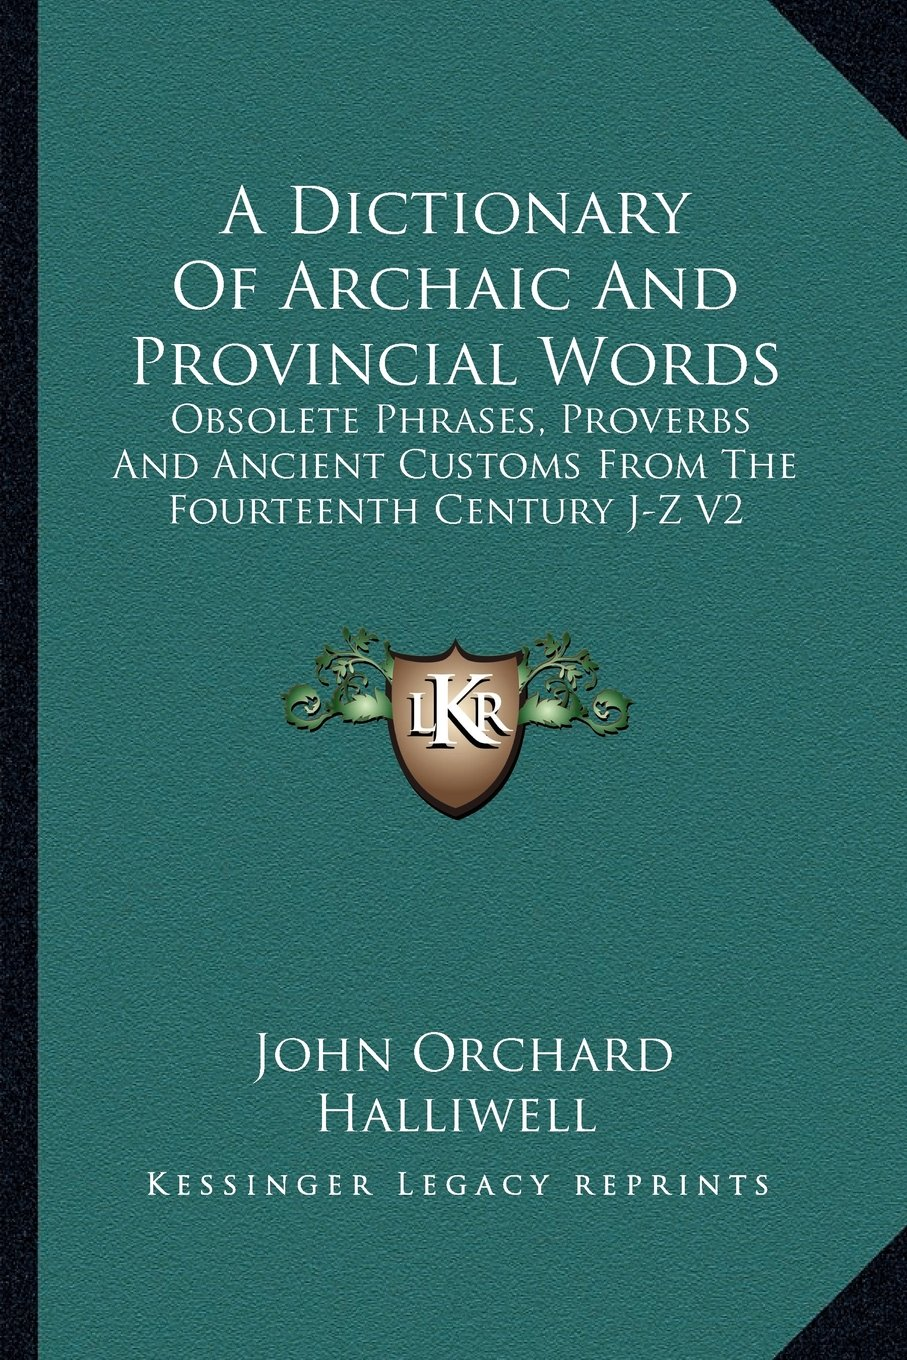 Download A Dictionary Of Archaic And Provincial Words: Obsolete Phrases, Proverbs And Ancient Customs From The Fourteenth Century J-Z V2 ebook